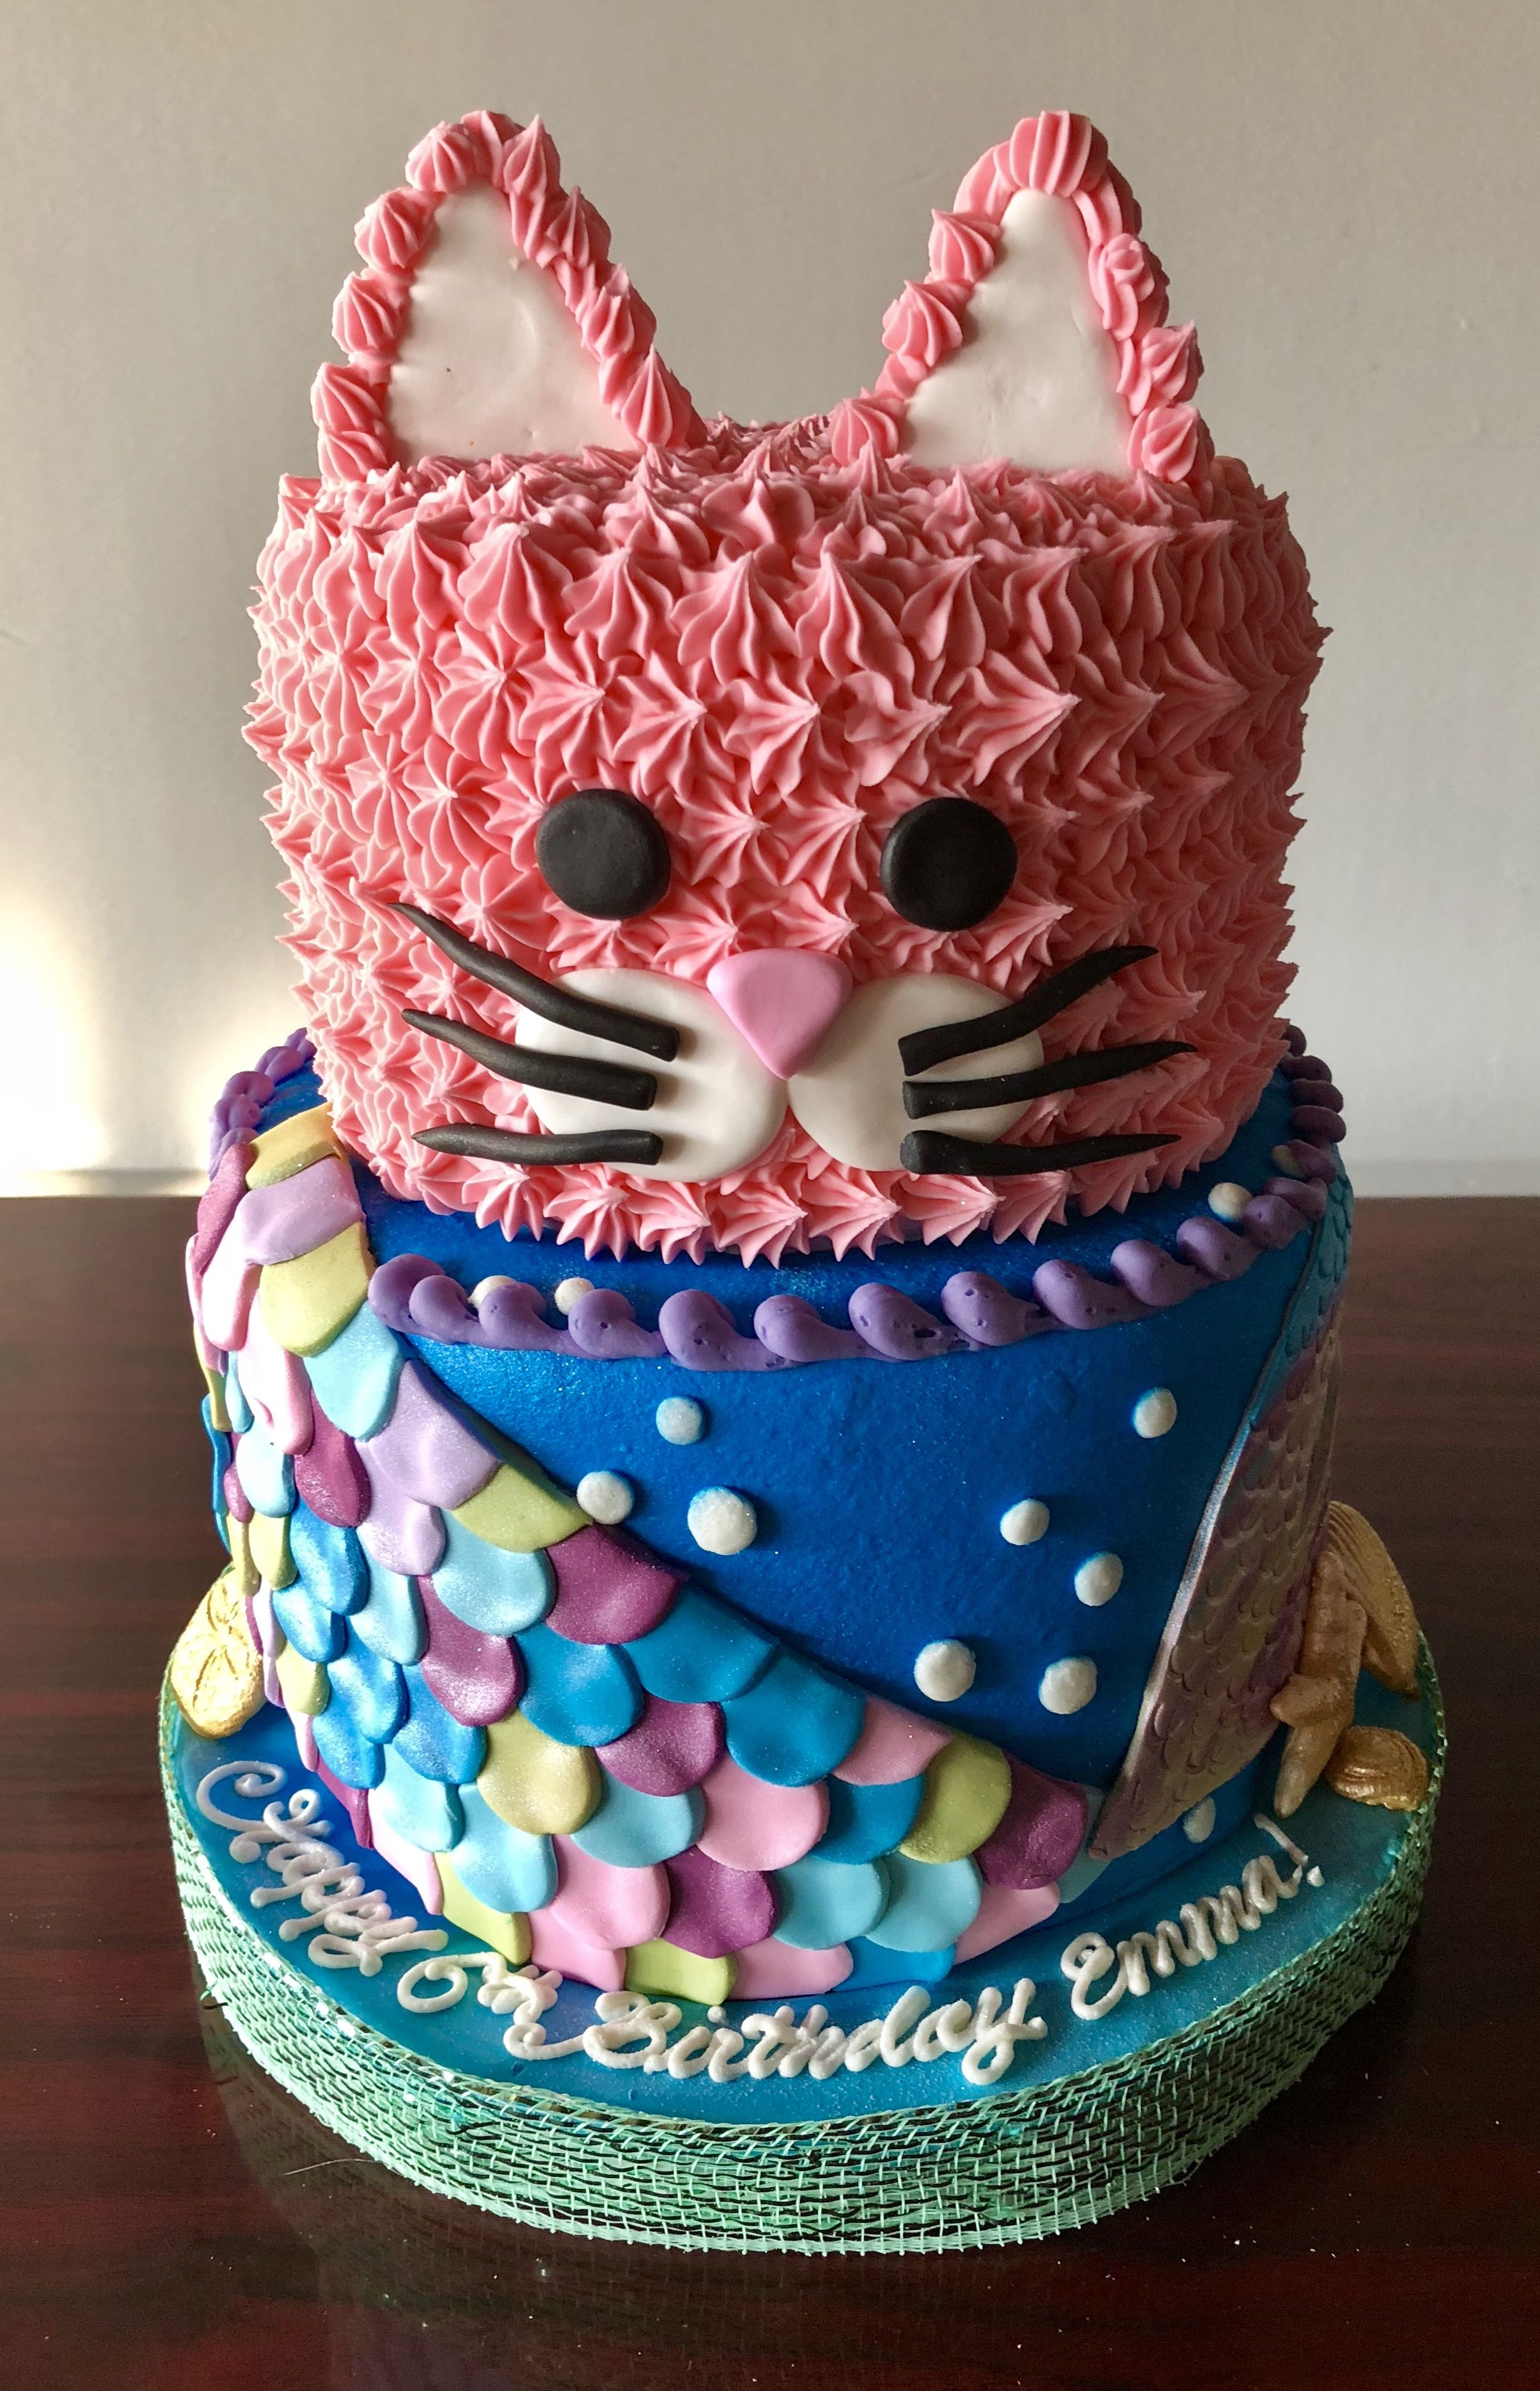 Kitty and Mermaid Cake Adrienne & Co. Bakery Toddler